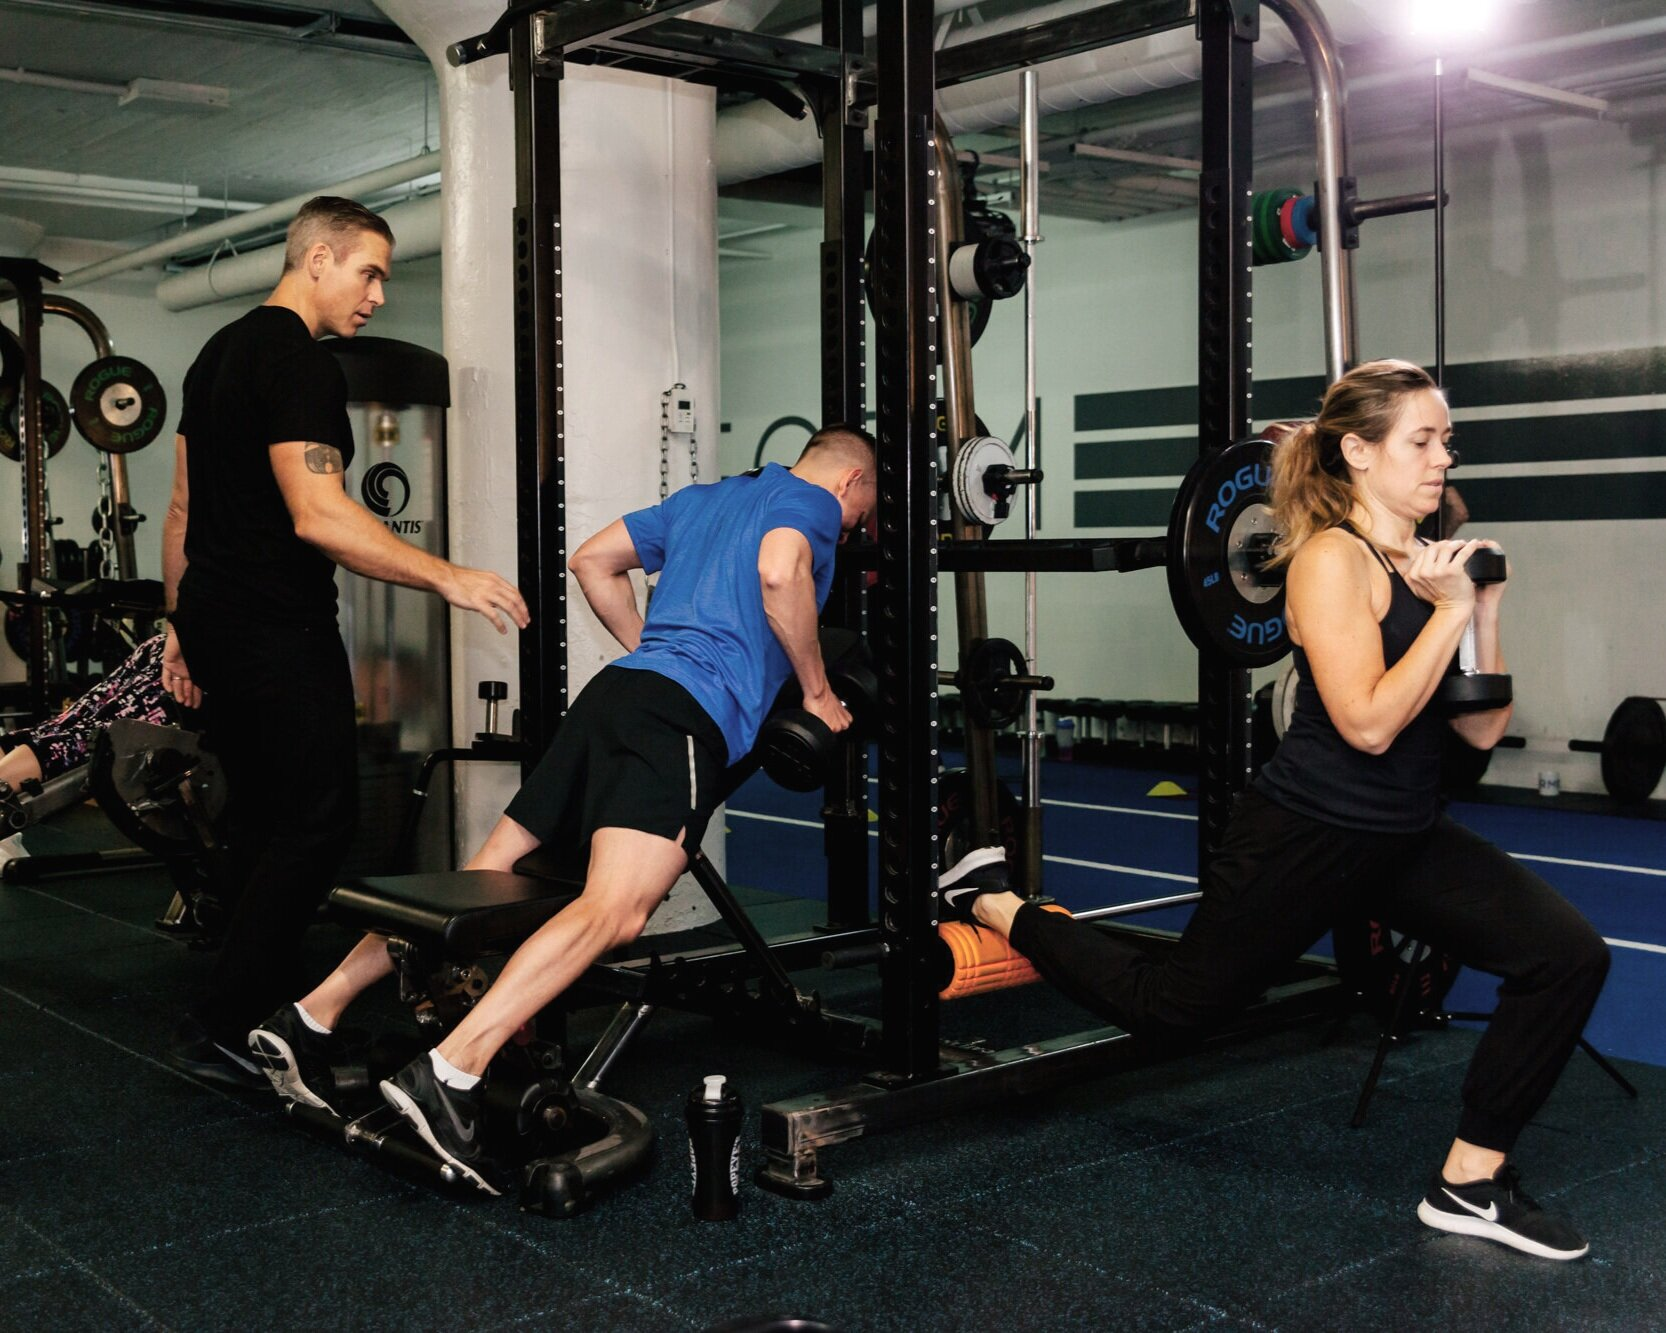 ABOUT THE WORKOUT - MRT is resistance training at slower more controlled tempos loaded with a moderate weight to elicit calorie burn. MRT is a total-body routine that works all the major muscle groups in each session. This workout will get you sweating and shredding  in 50 minutes max!